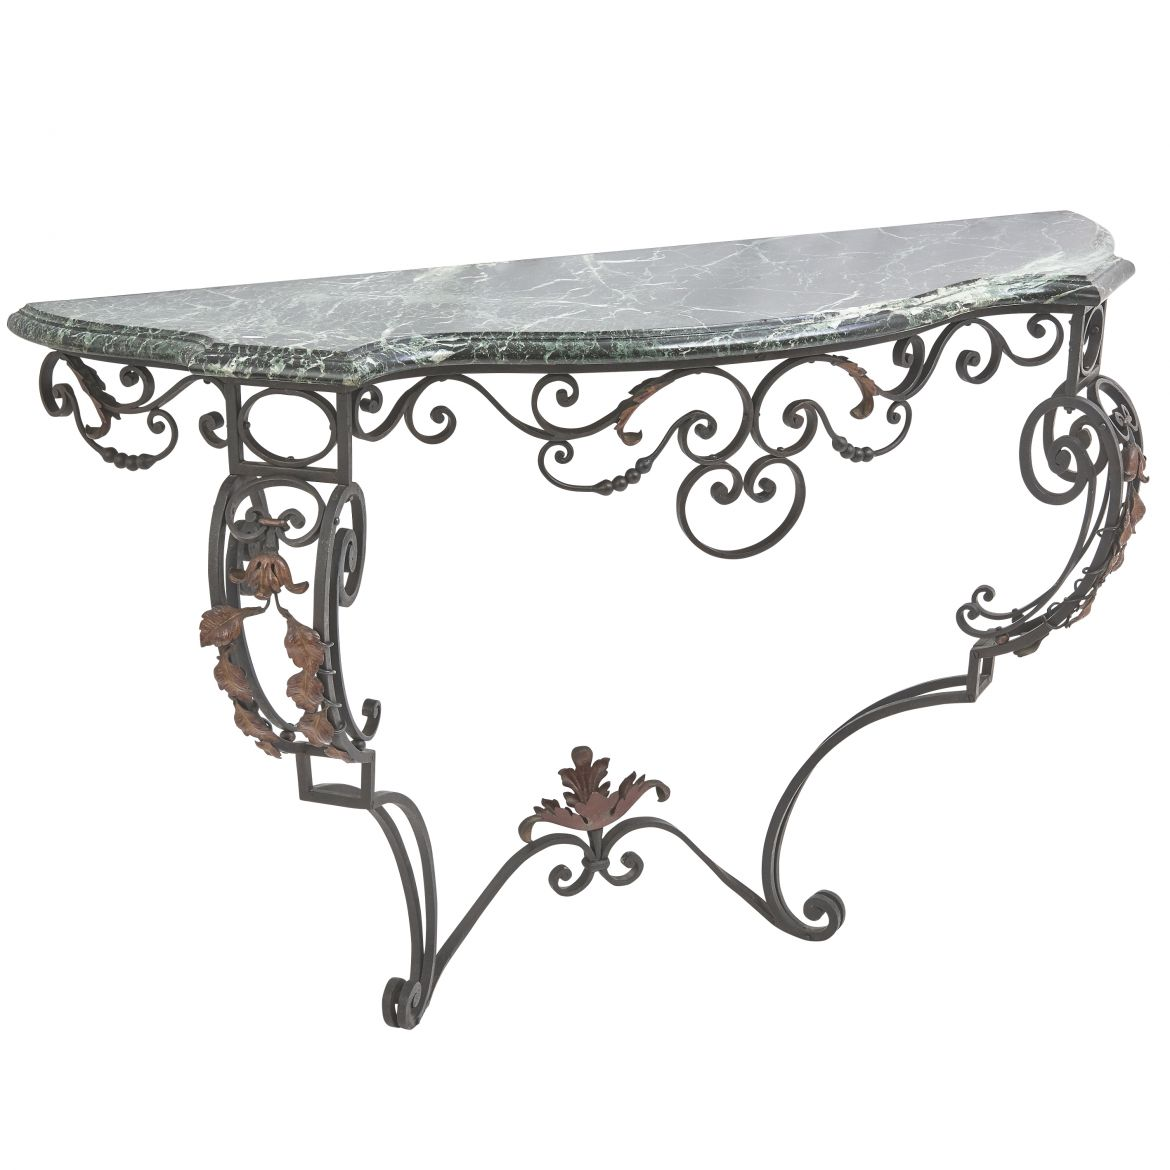 Wrought Iron And Verde Antico Marble Console